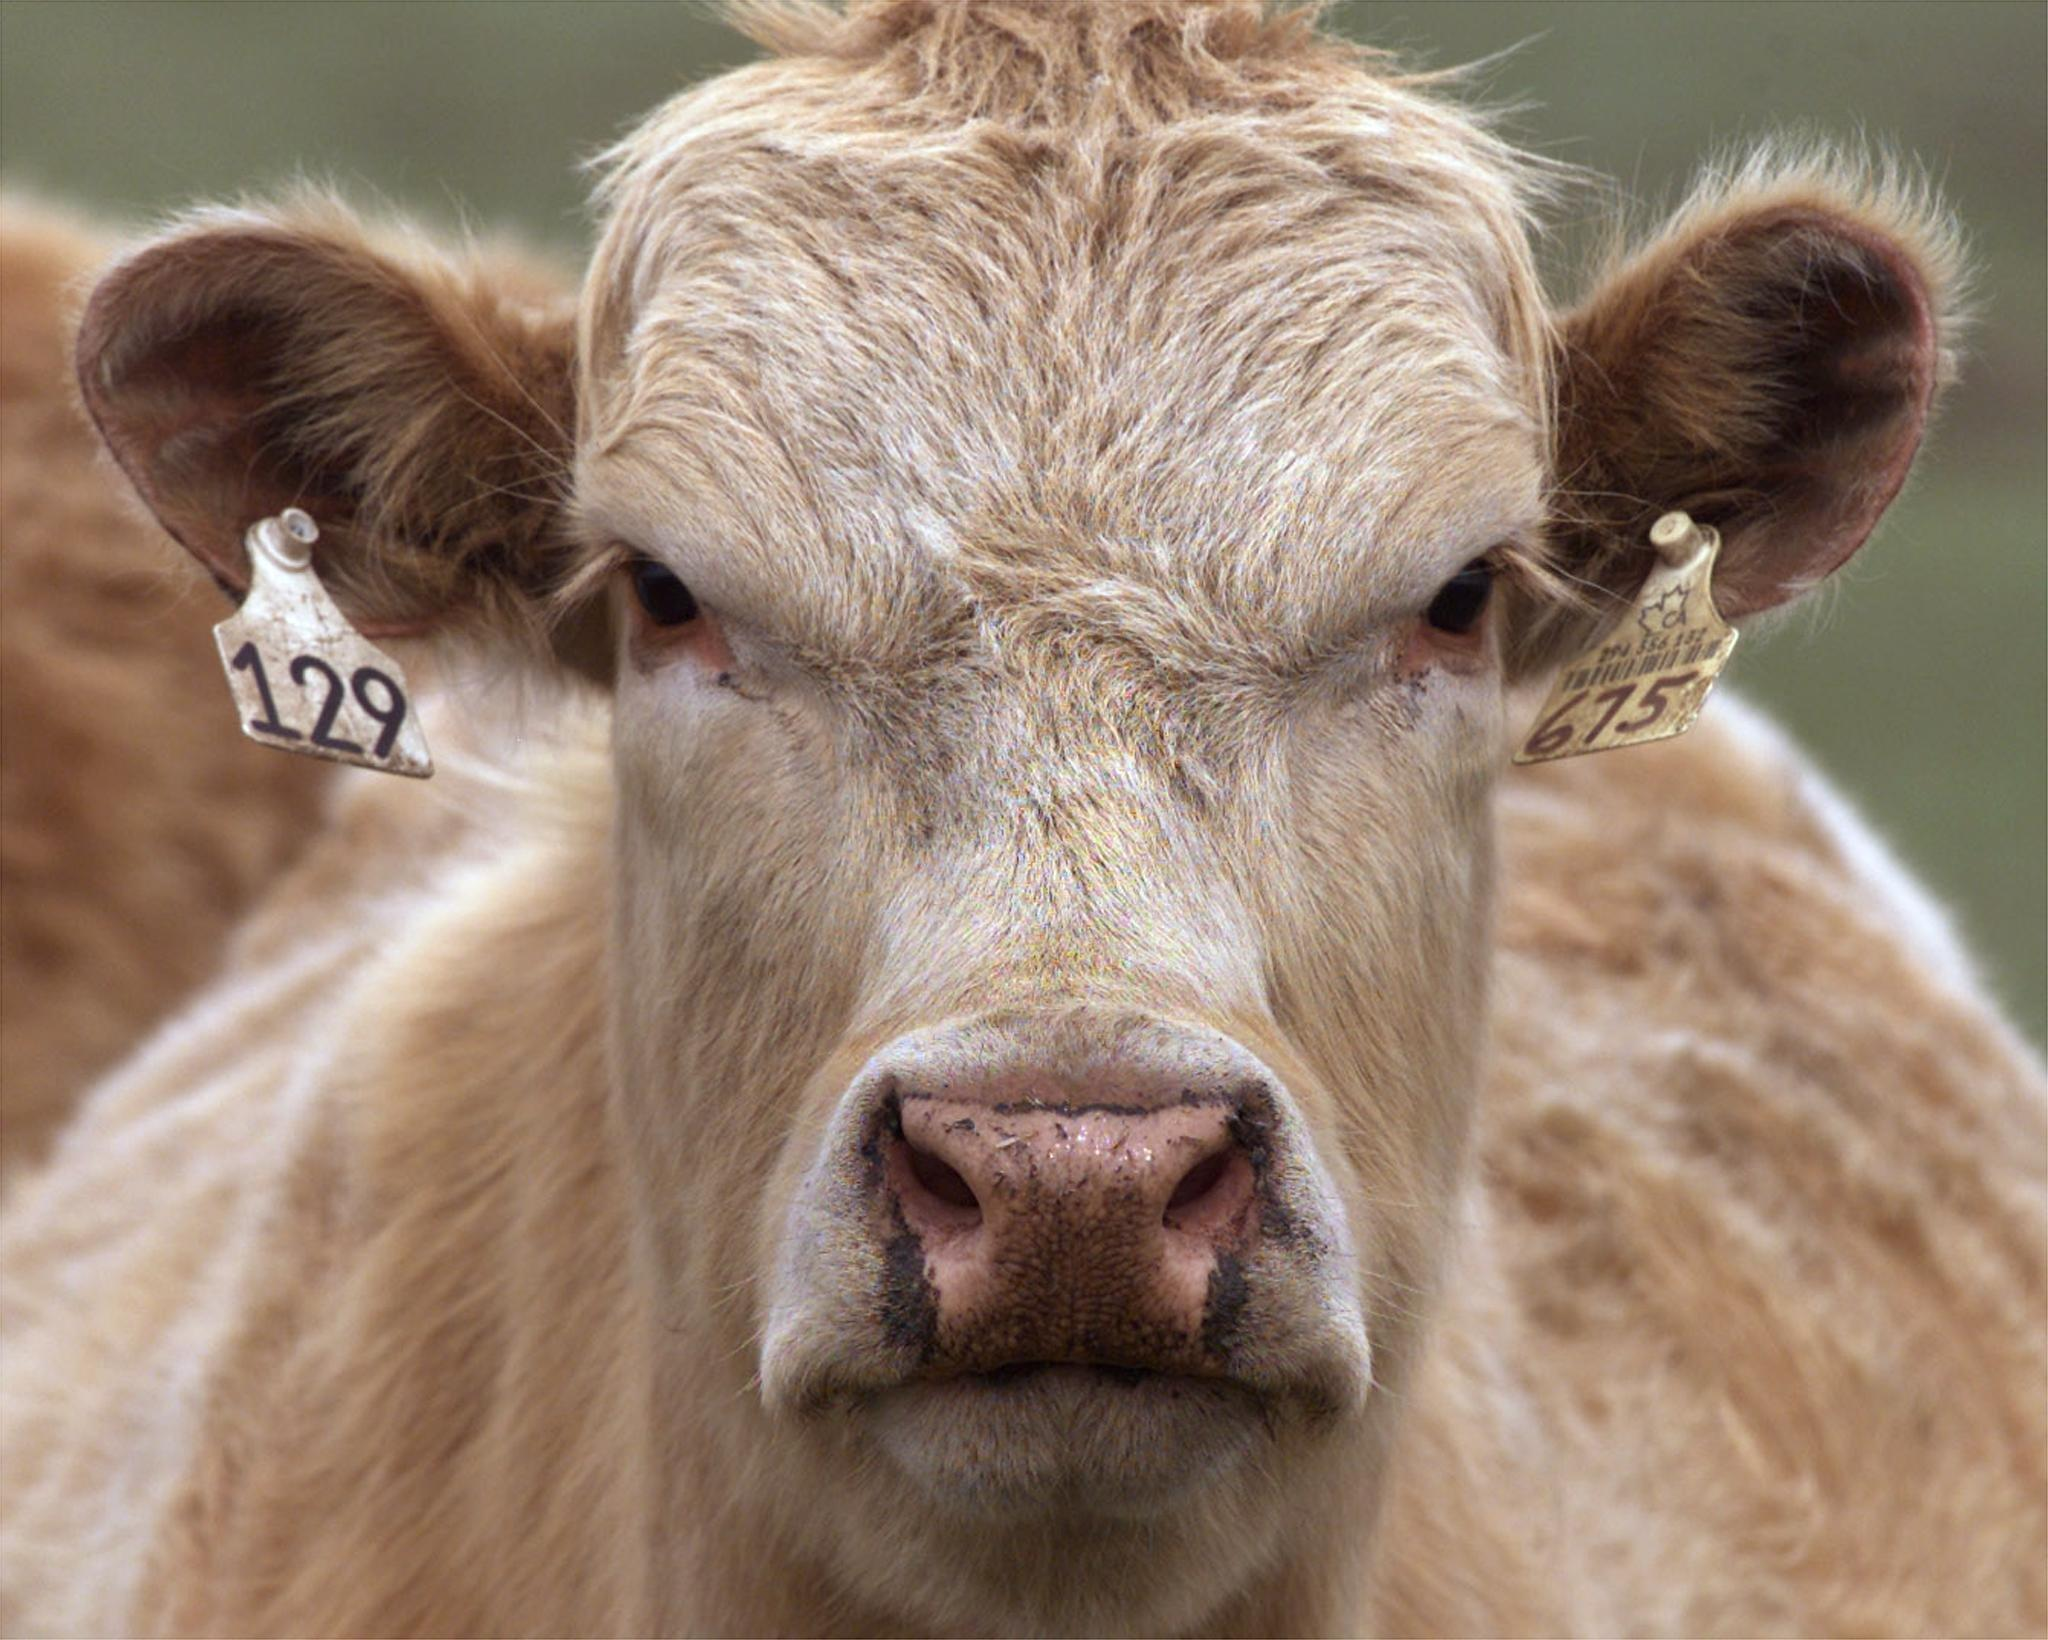 Mad cow disease found in Florida animal sparking fears of US outbreak